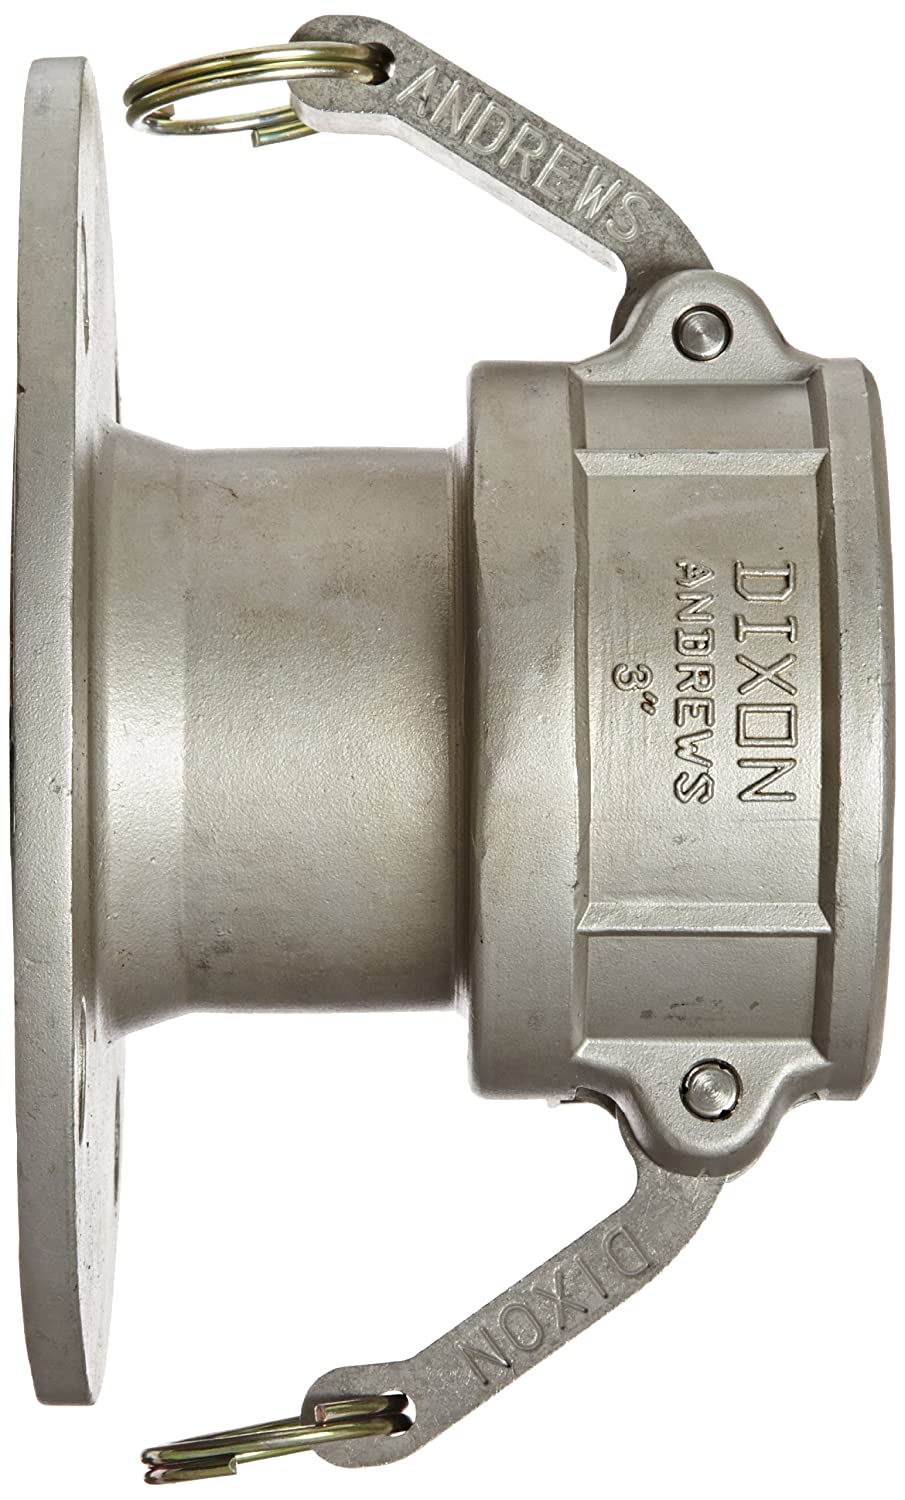 Dixon 200-DL-SS Stainless Steel 316 Cam and Groove Hose Fitting 2 Socket x 150# ASA Flange